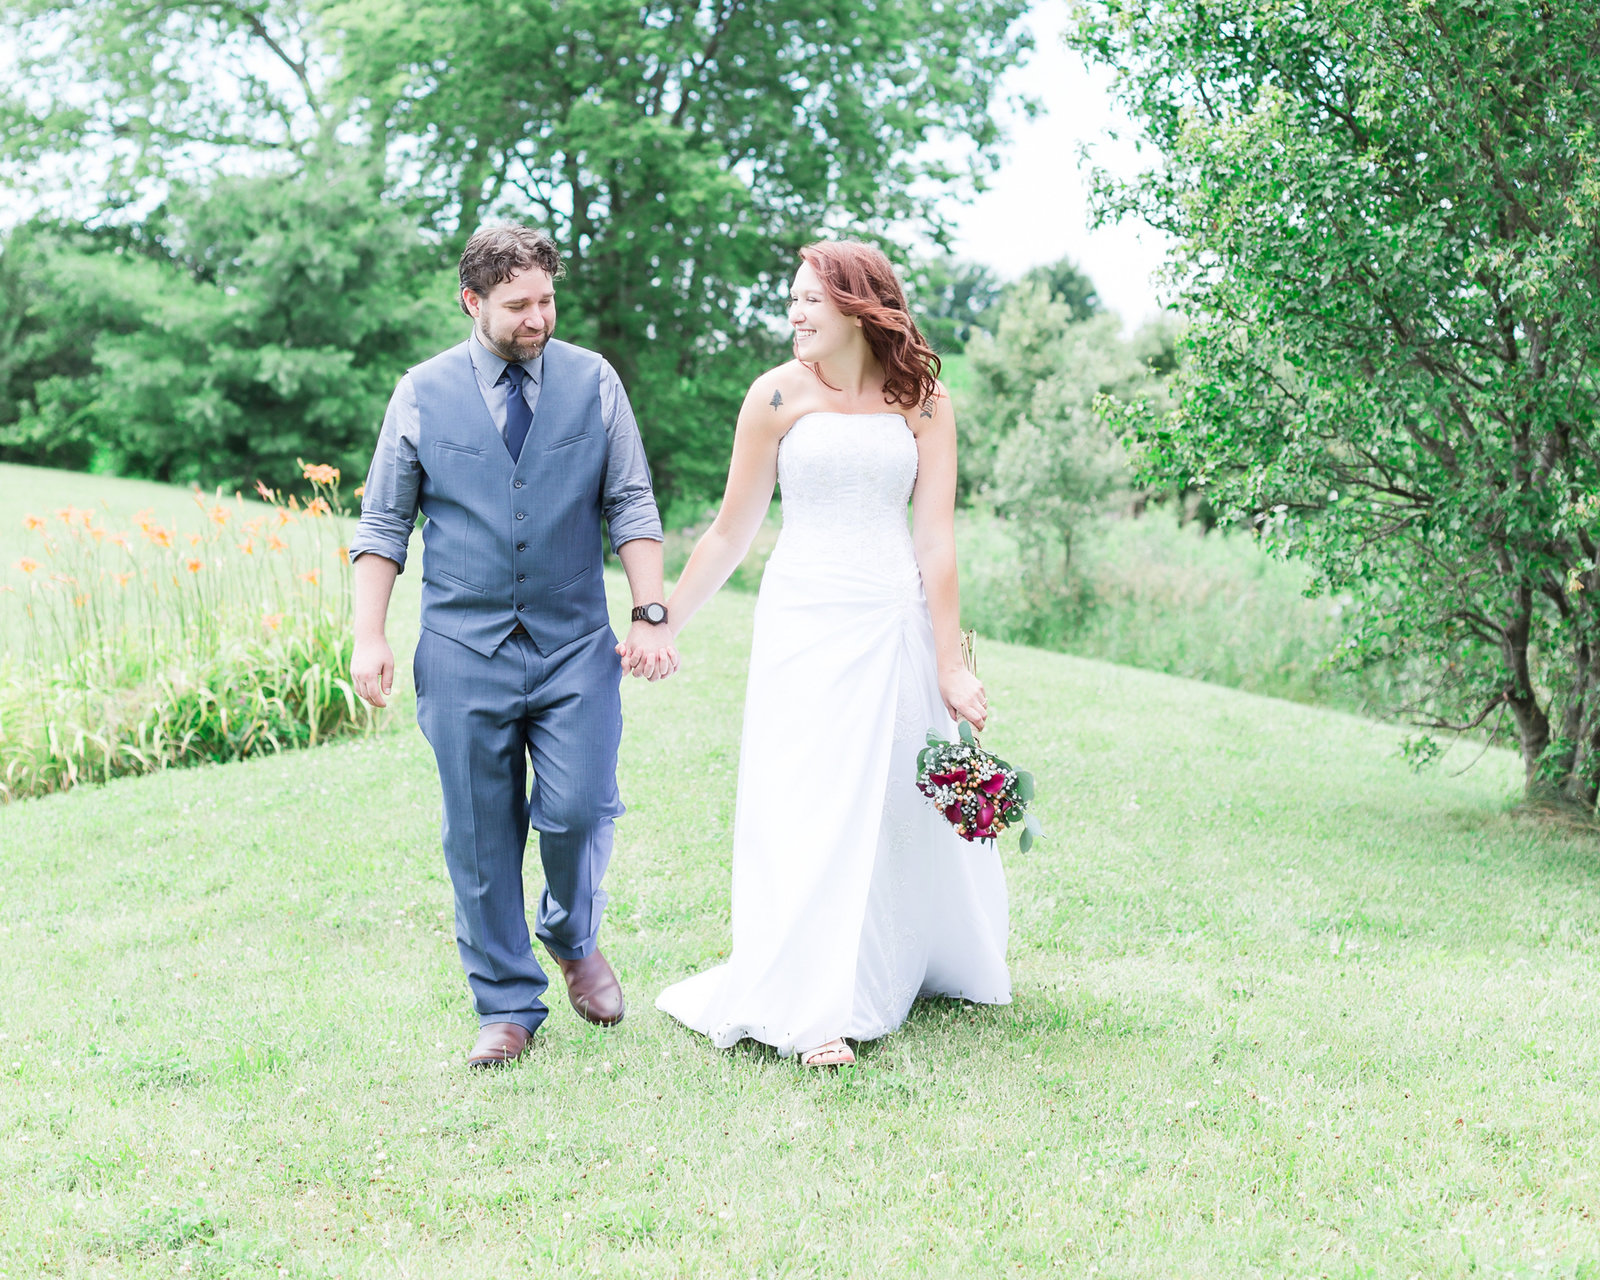 Bride and groom in beautiful backyard wedding